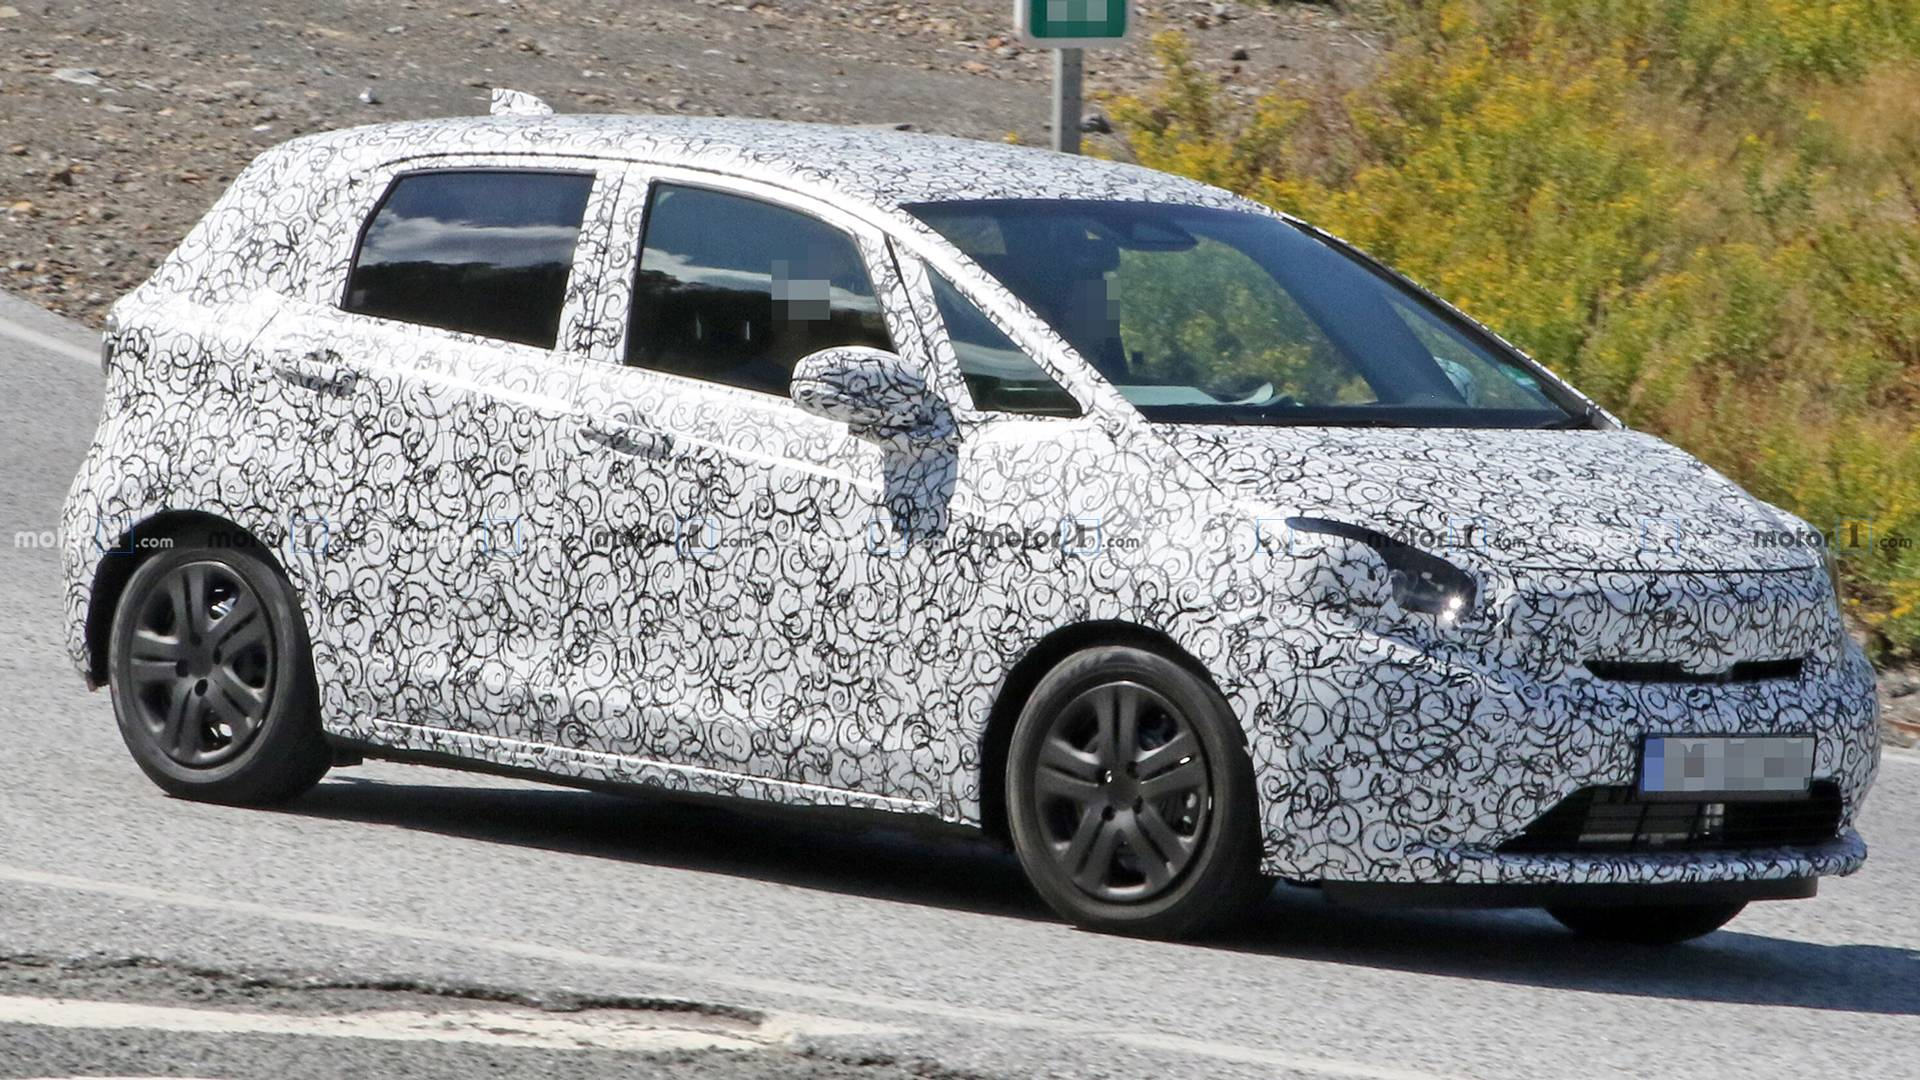 honda-fit-or-jazz-spy-shots.jpg